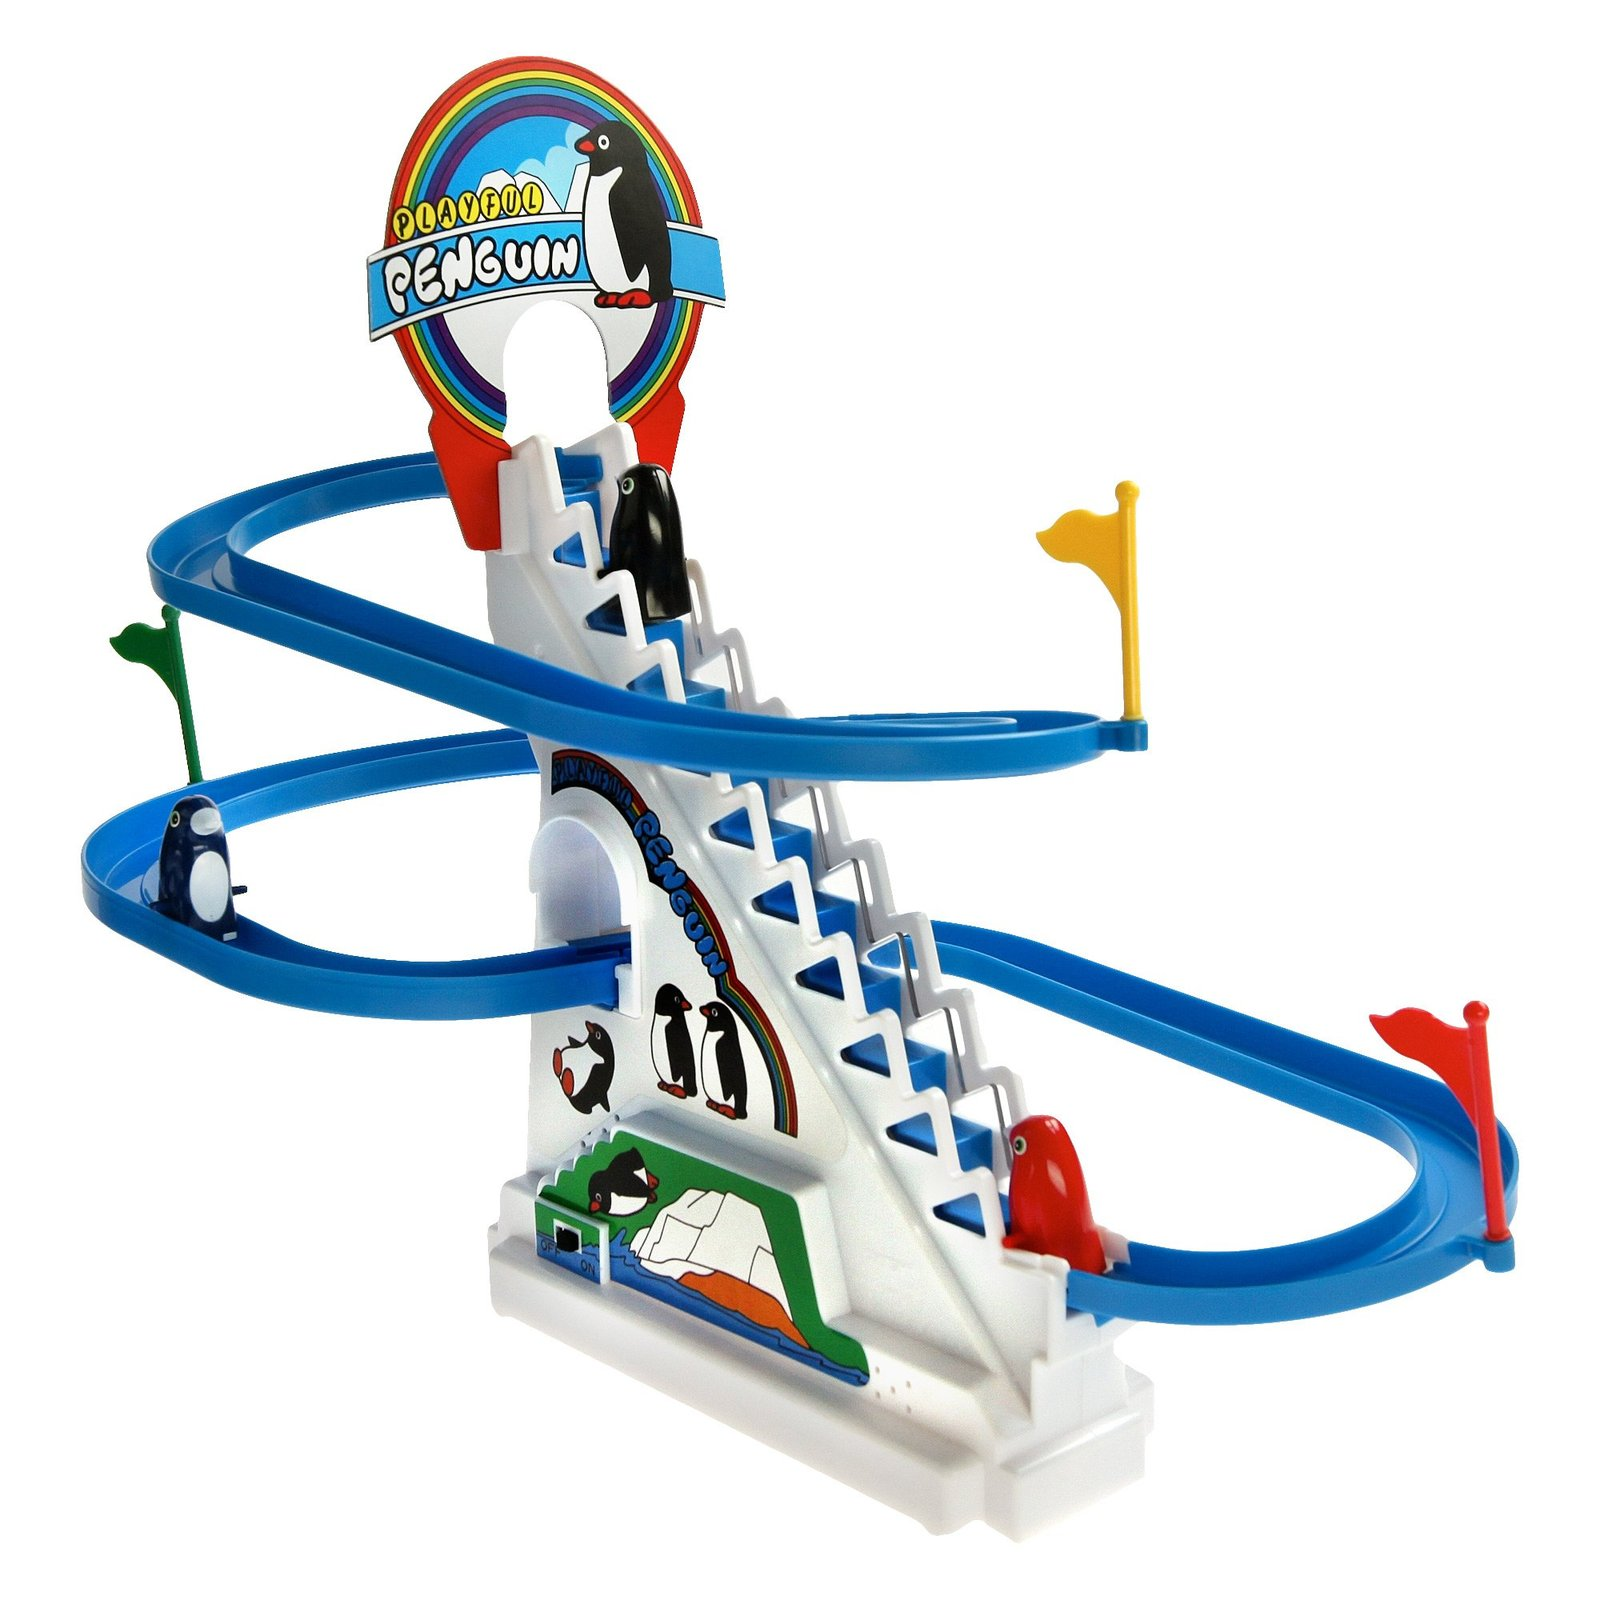 Penguin Race loved this as a kid. Note to anyone now an